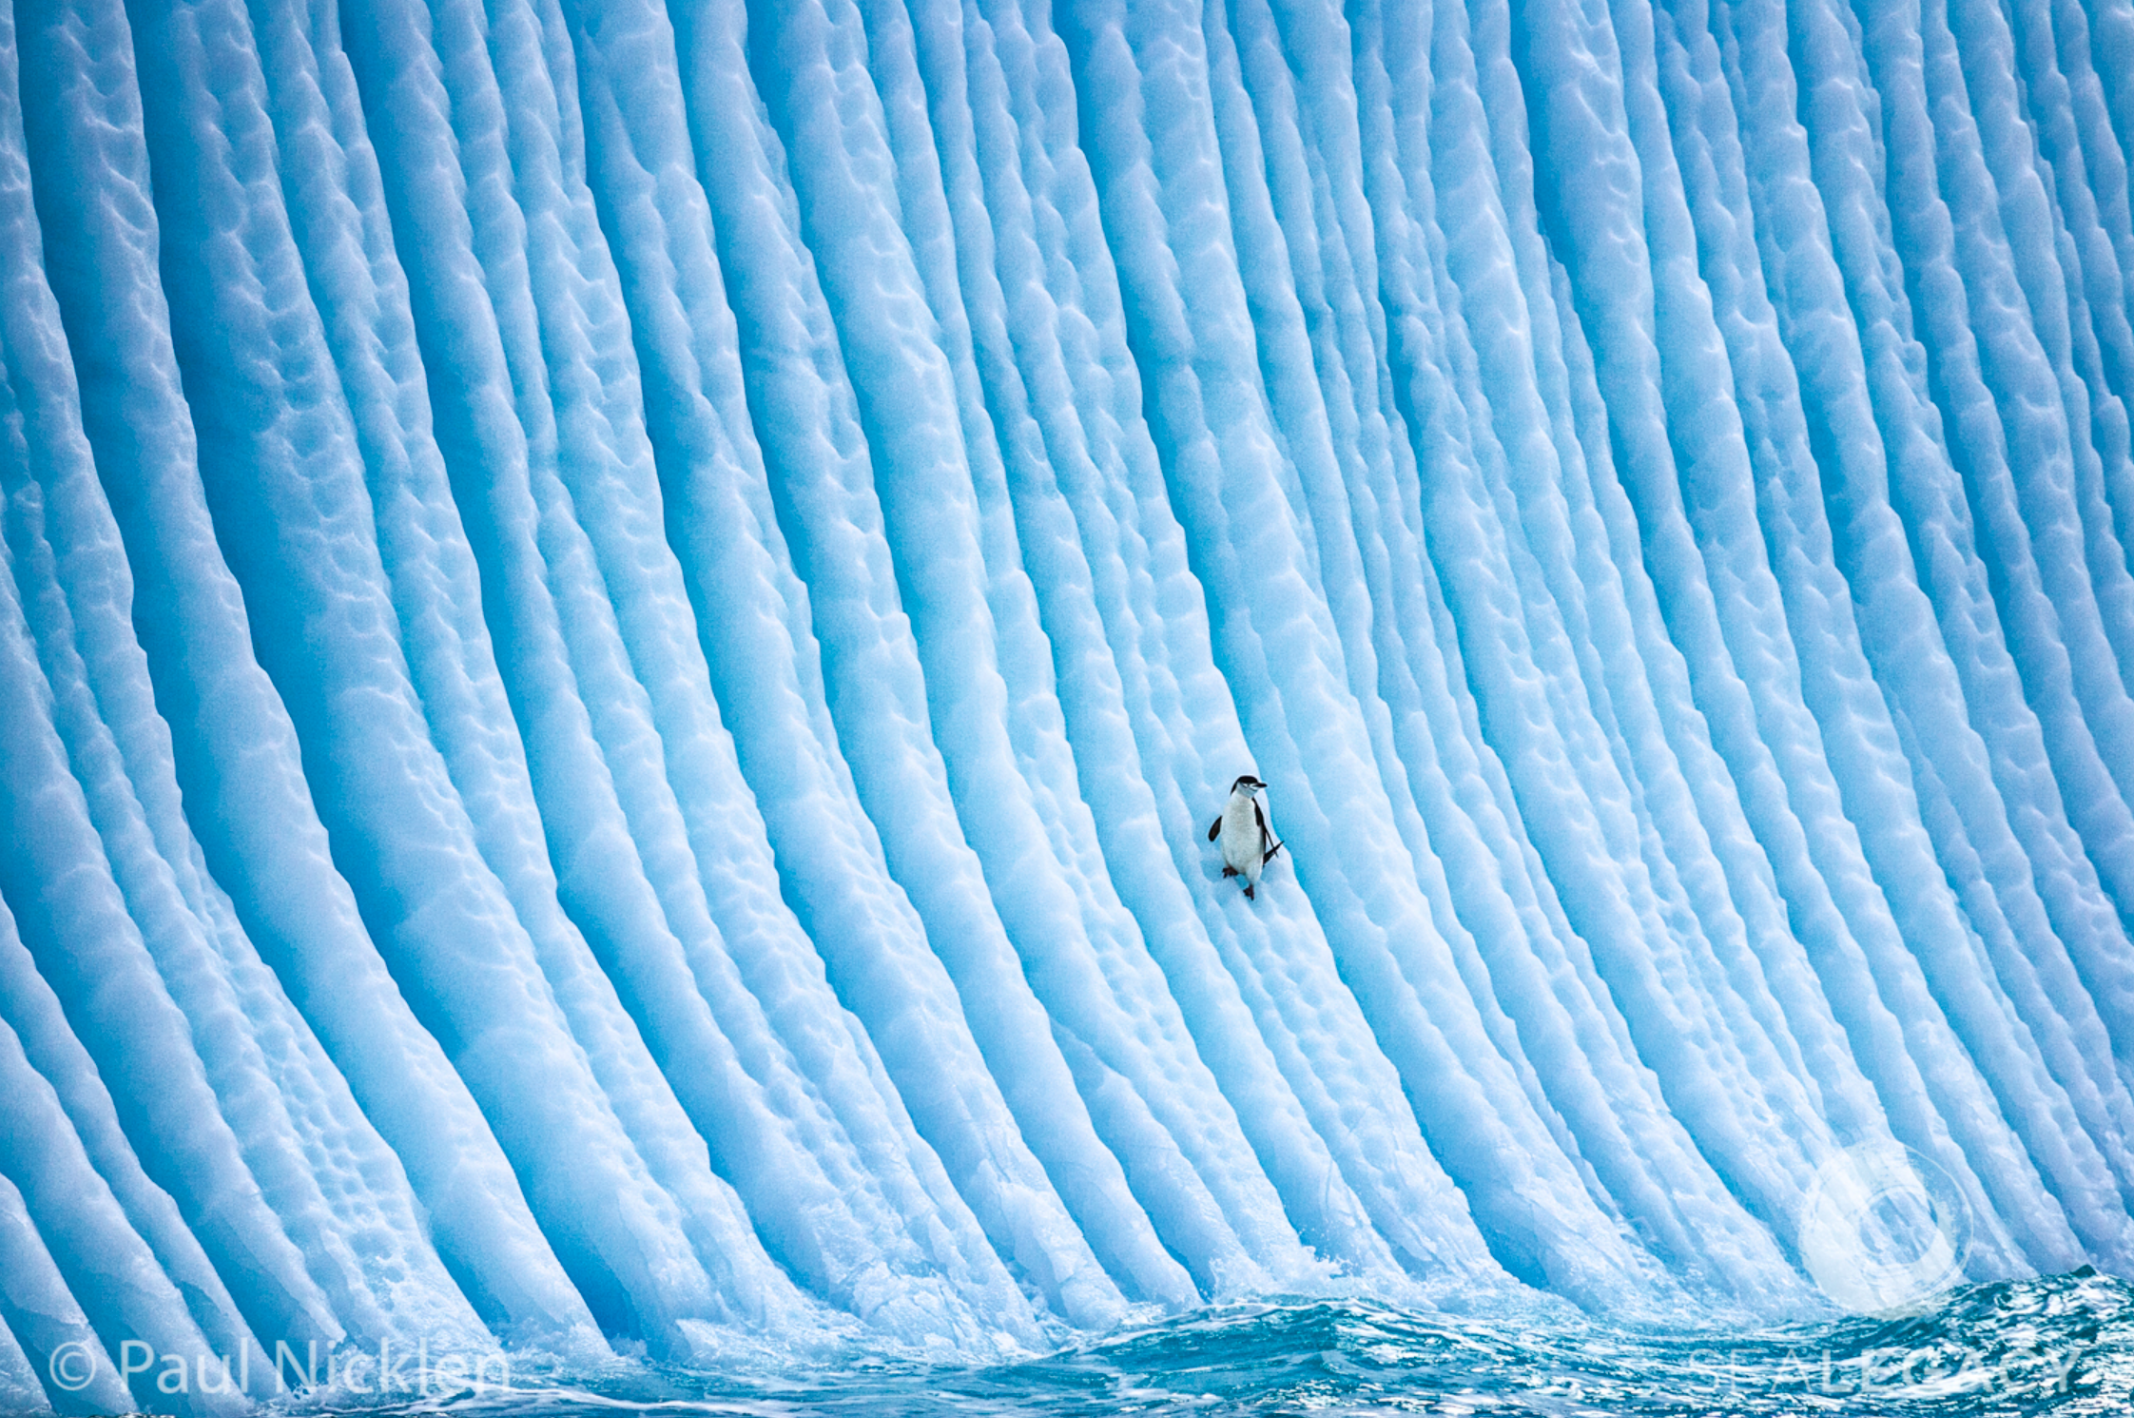 Paul Nicklen, Slipper Slope  Digital Chromogenic Print, 20x30 in.